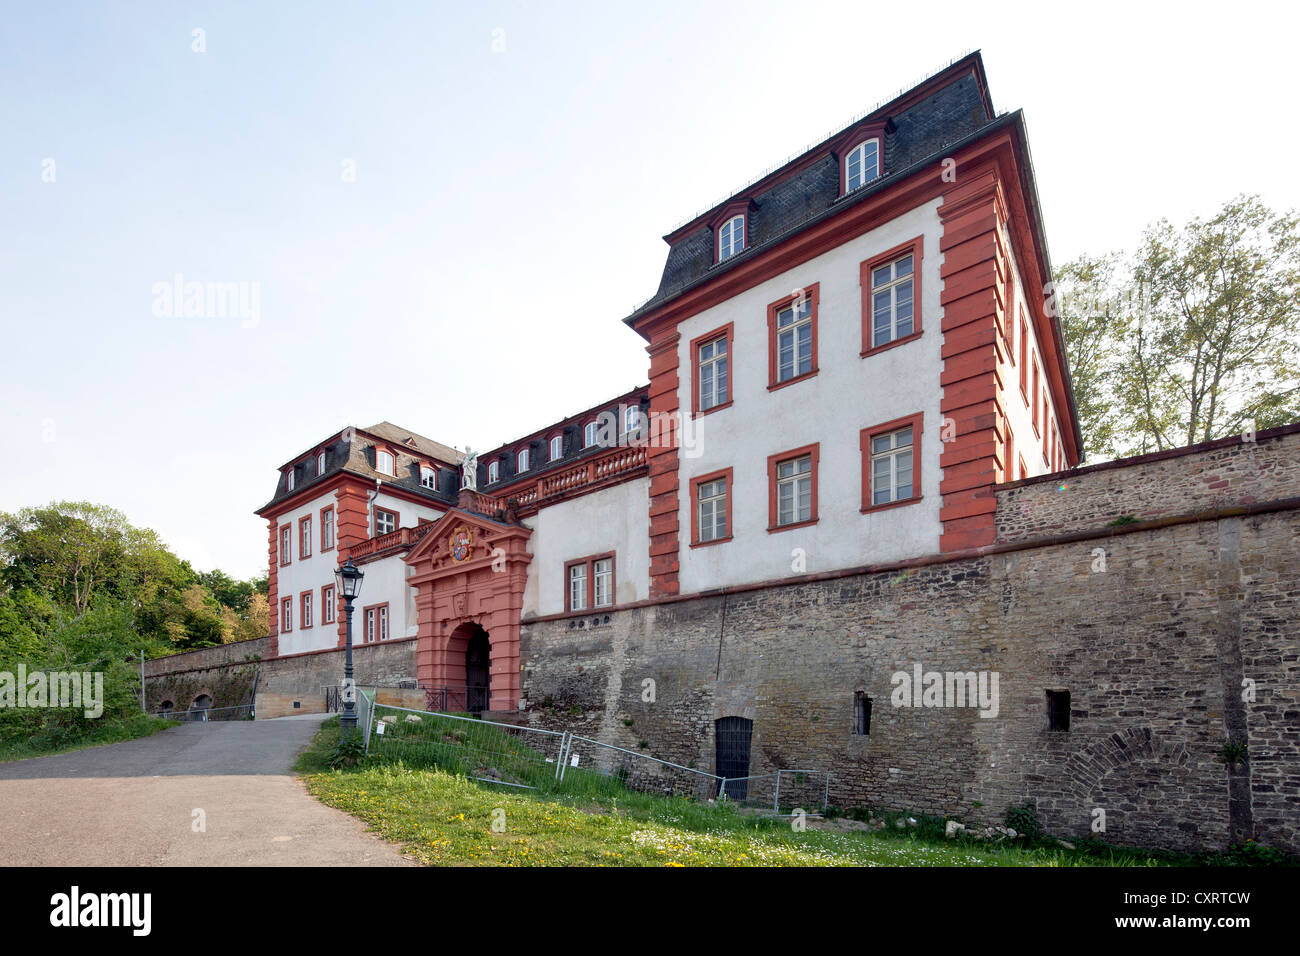 Former Citadel of Mainz, Department of Urban Planning, Mainz, Rhineland-Palatinate, Germany, Europe, PublicGround Stock Photo